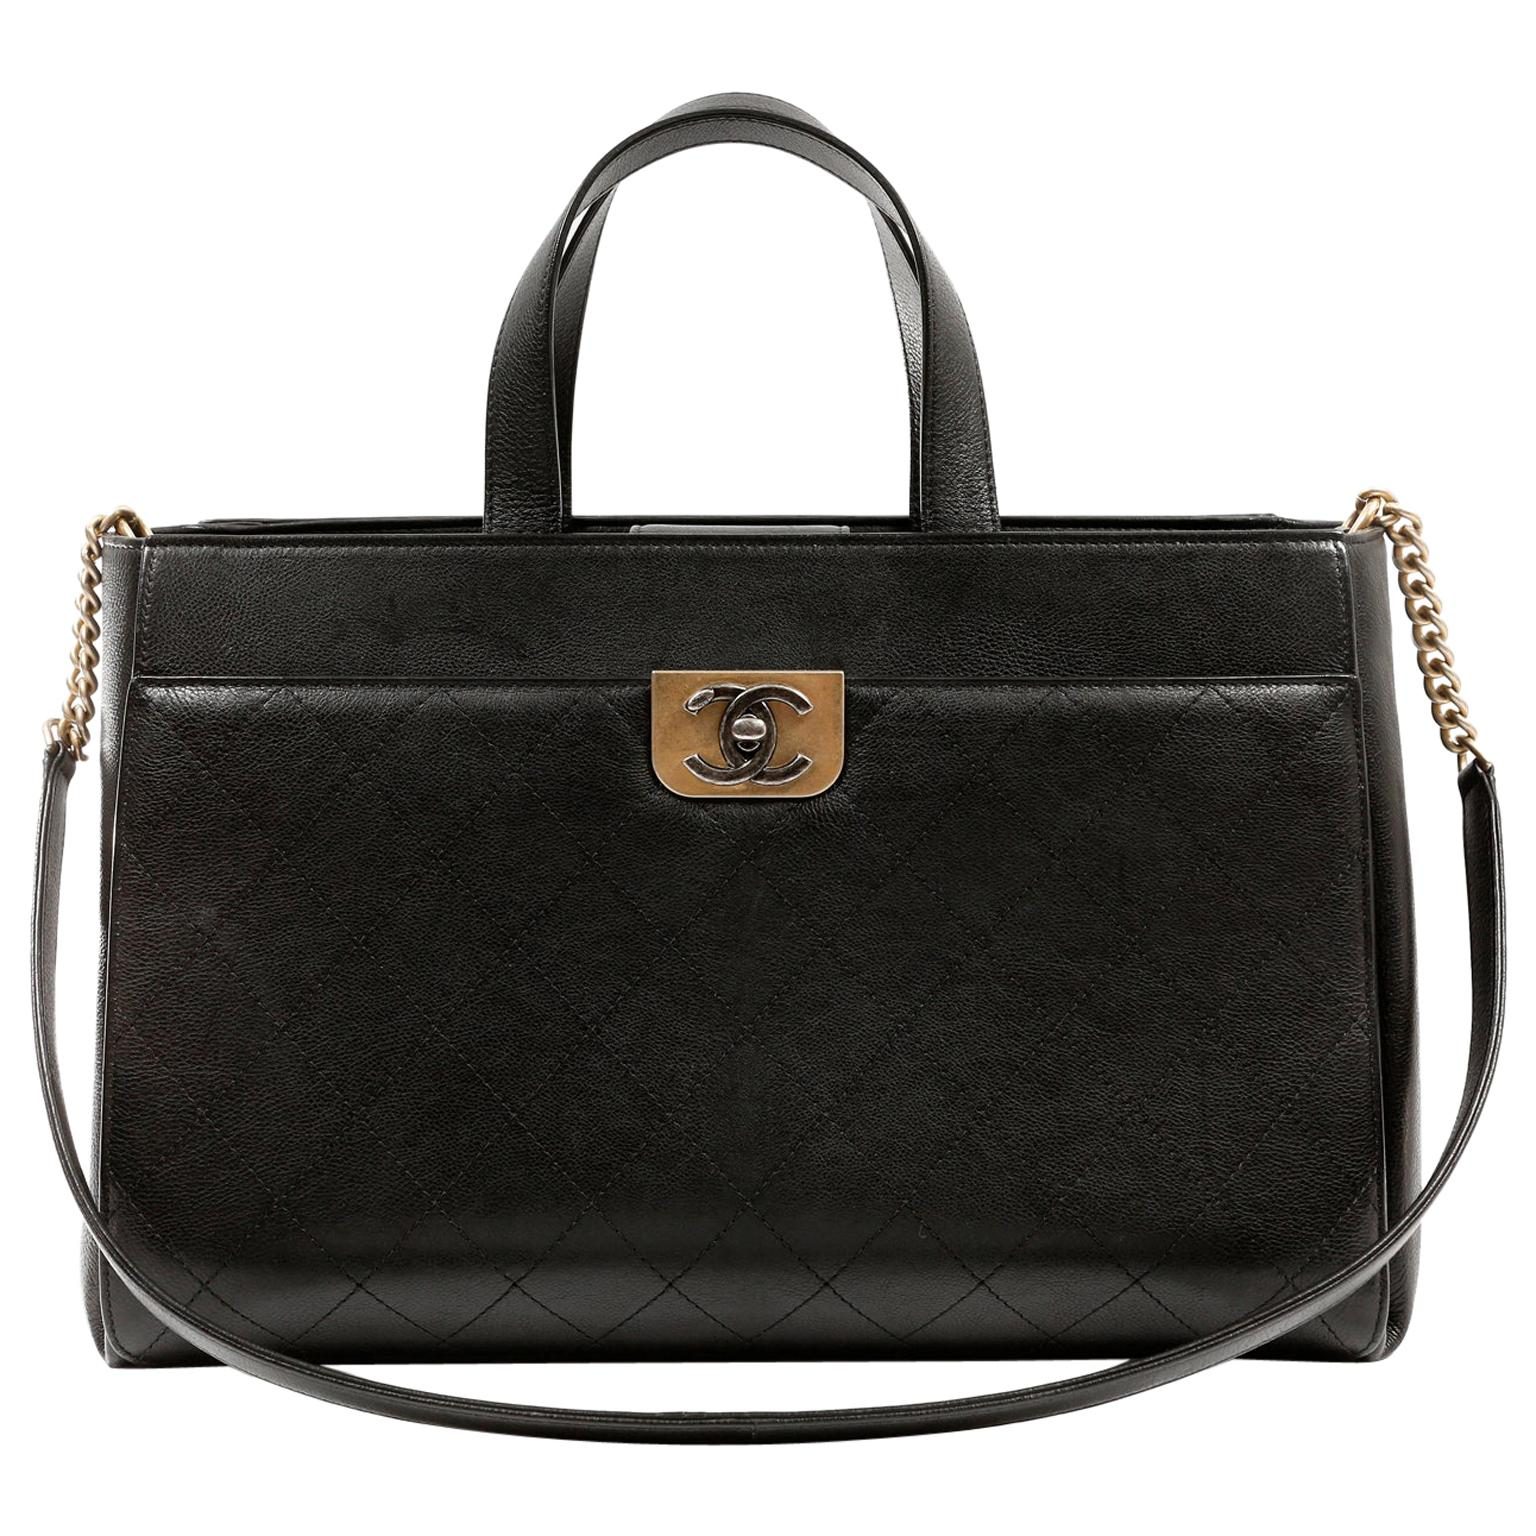 Chanel Black Calfskin Straight Lines Tote